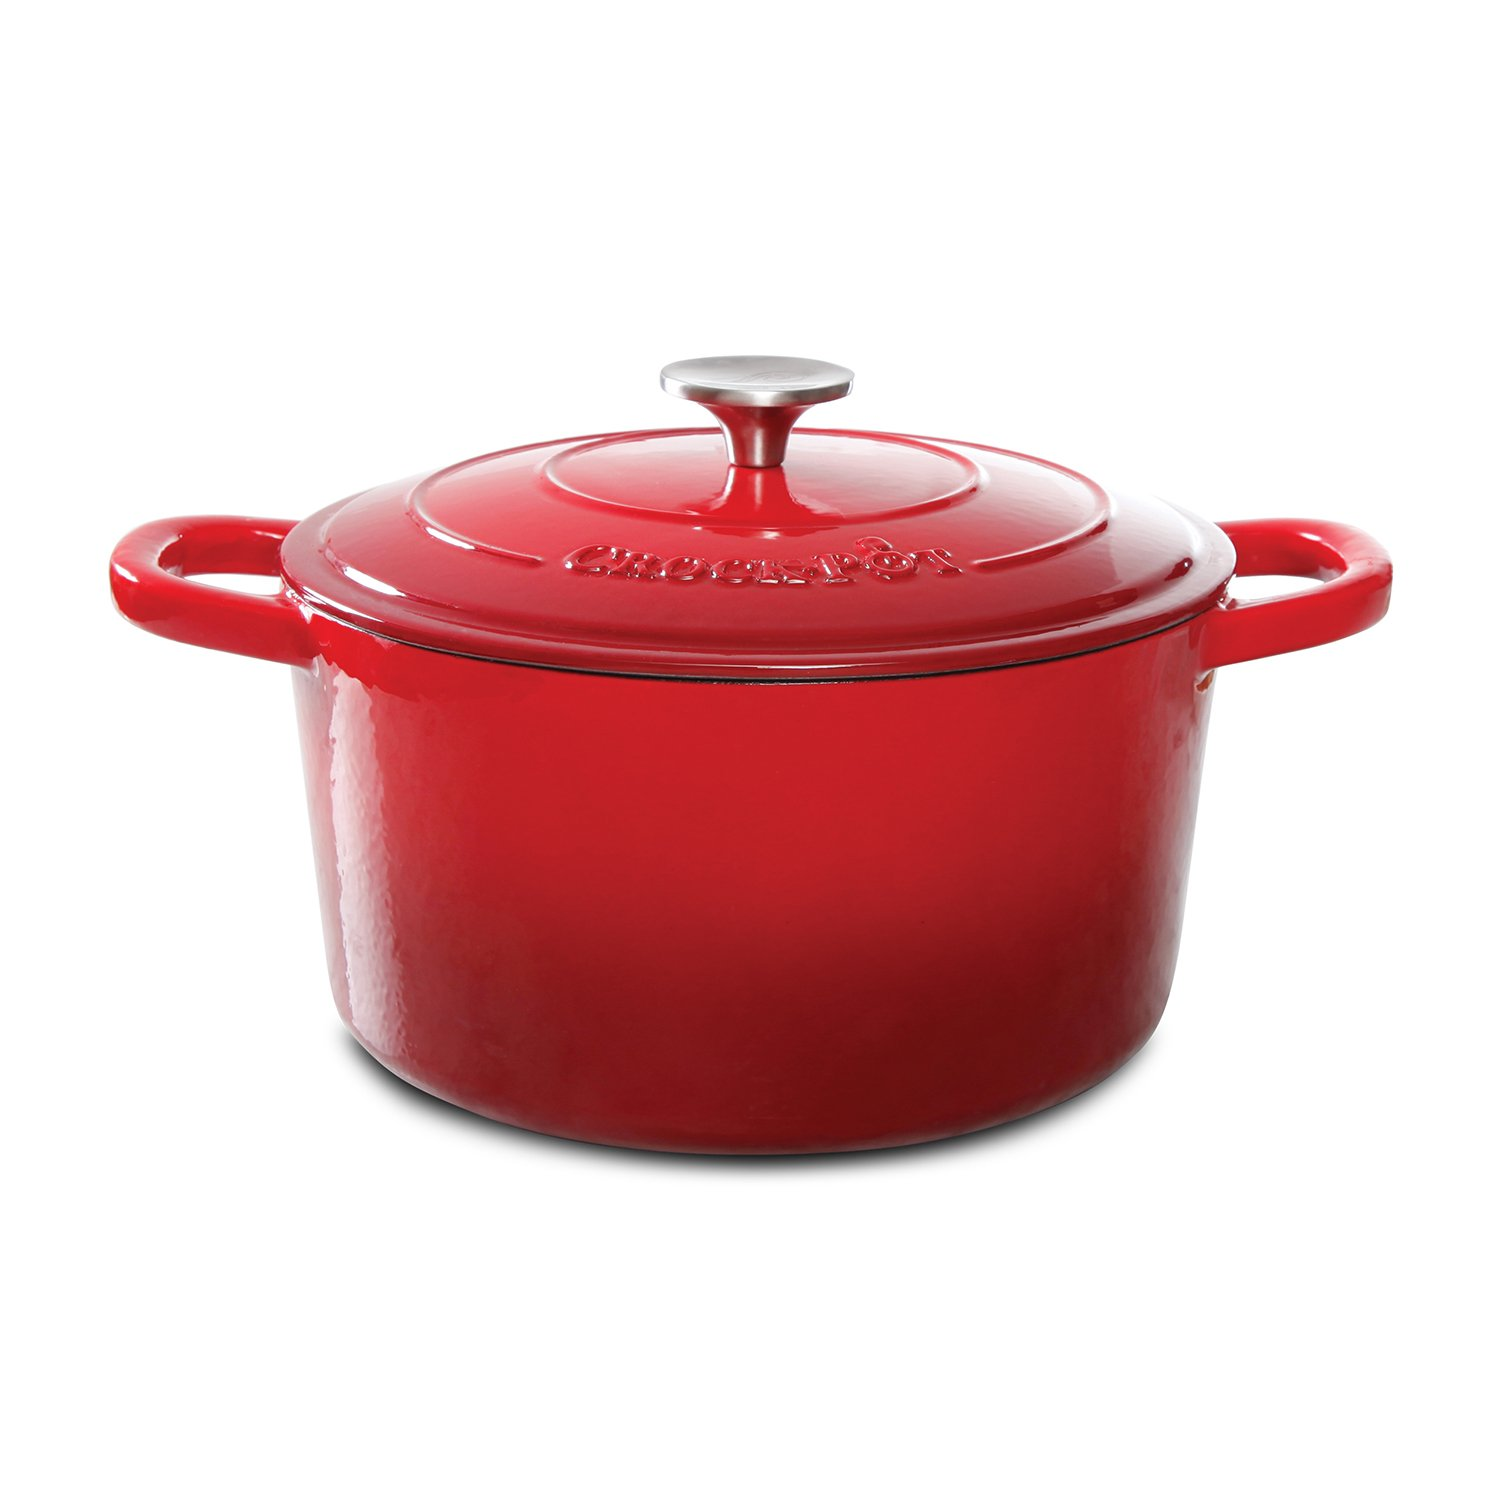 Gibson Crock Pot Cookware - 5 Quart Dutch Oven, Lid - Cas...